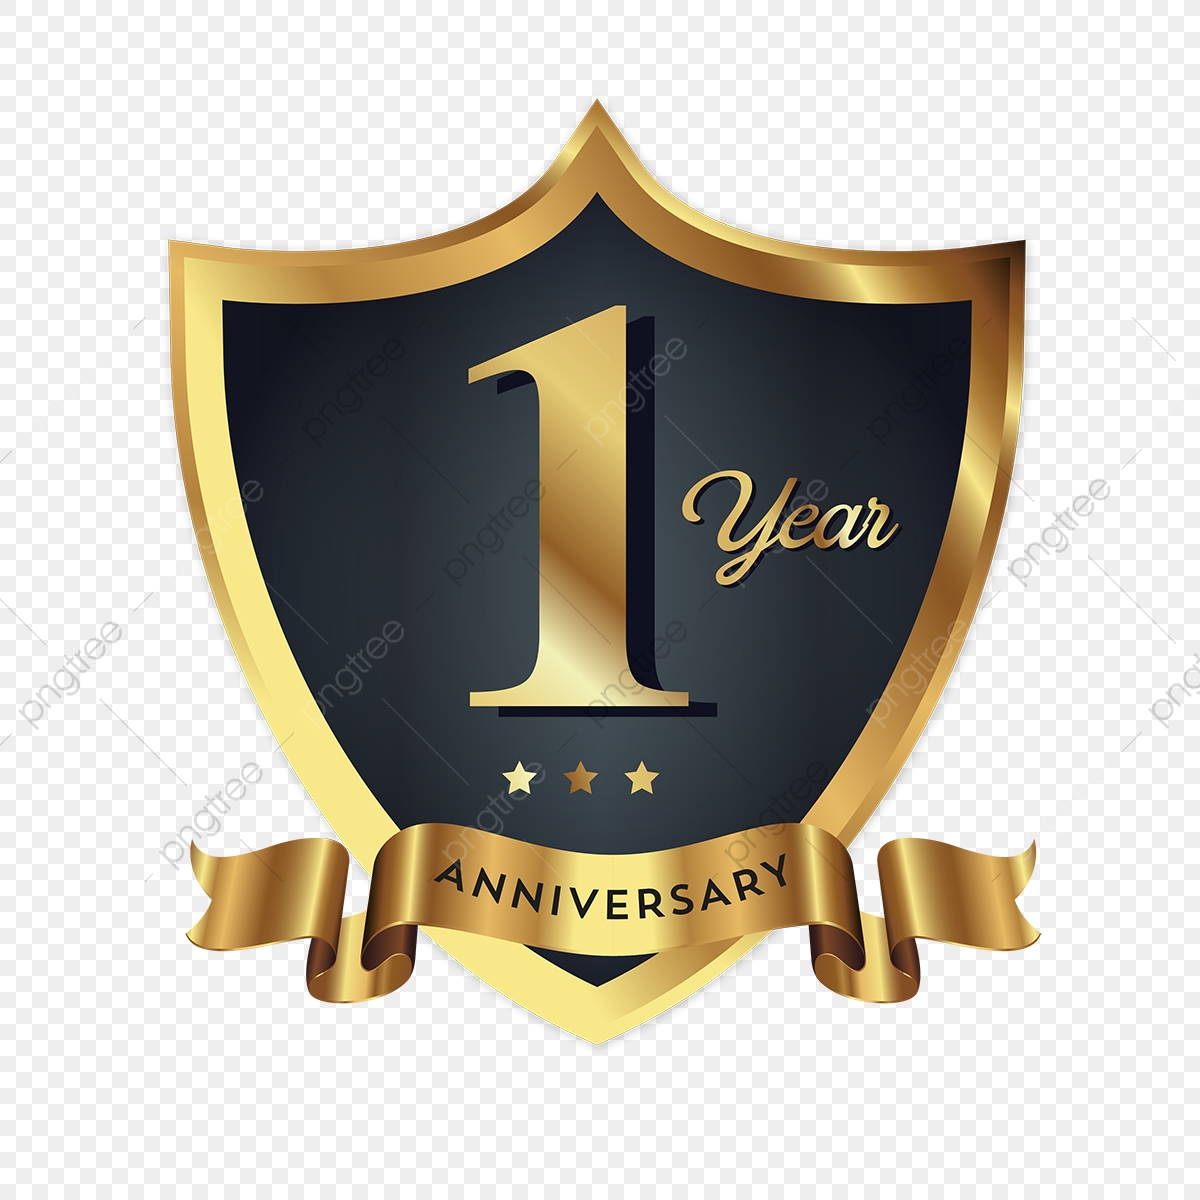 1st anniversary badge logo icon logo icons badge icons anniversary png and vector with transparent background for free download https pngtree com freepng 1st anniversary badge logo icon 3575106 html